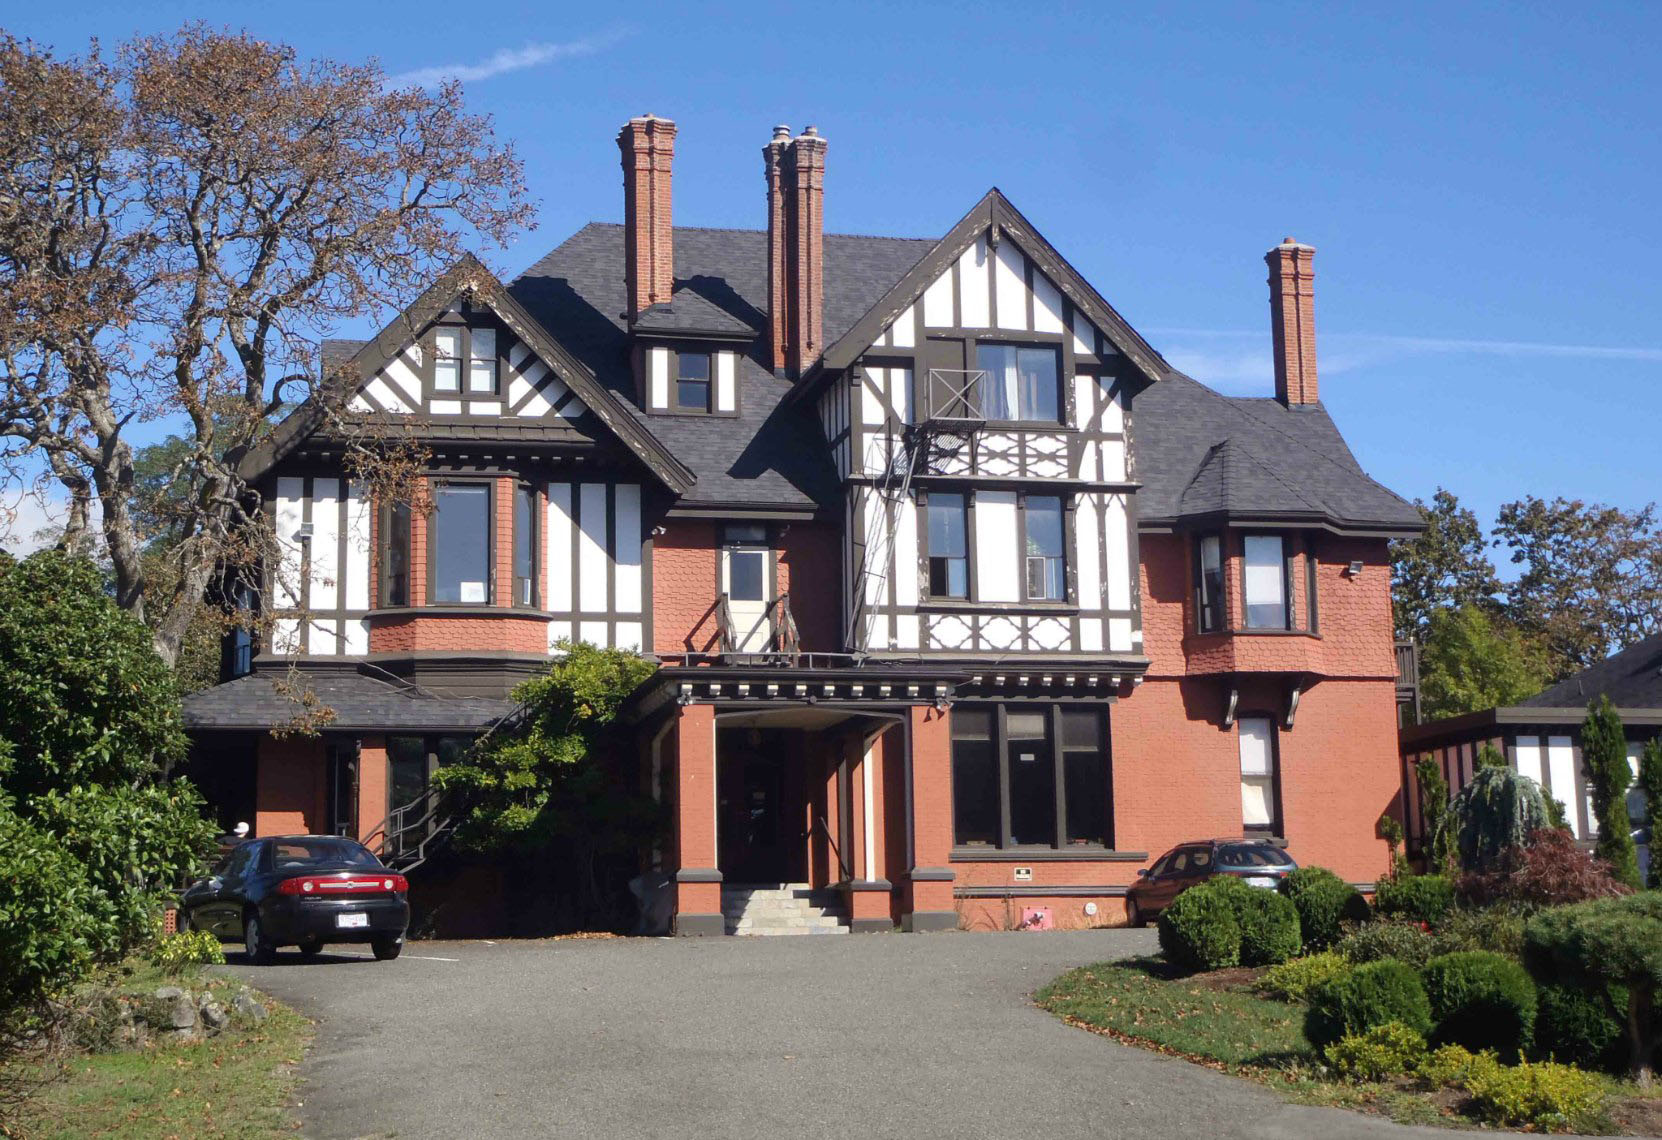 1322 Rockland Avenue, Victoria, B.C. Built for Hewitt Bostock in 1894 by architect William Ridgway Wilson